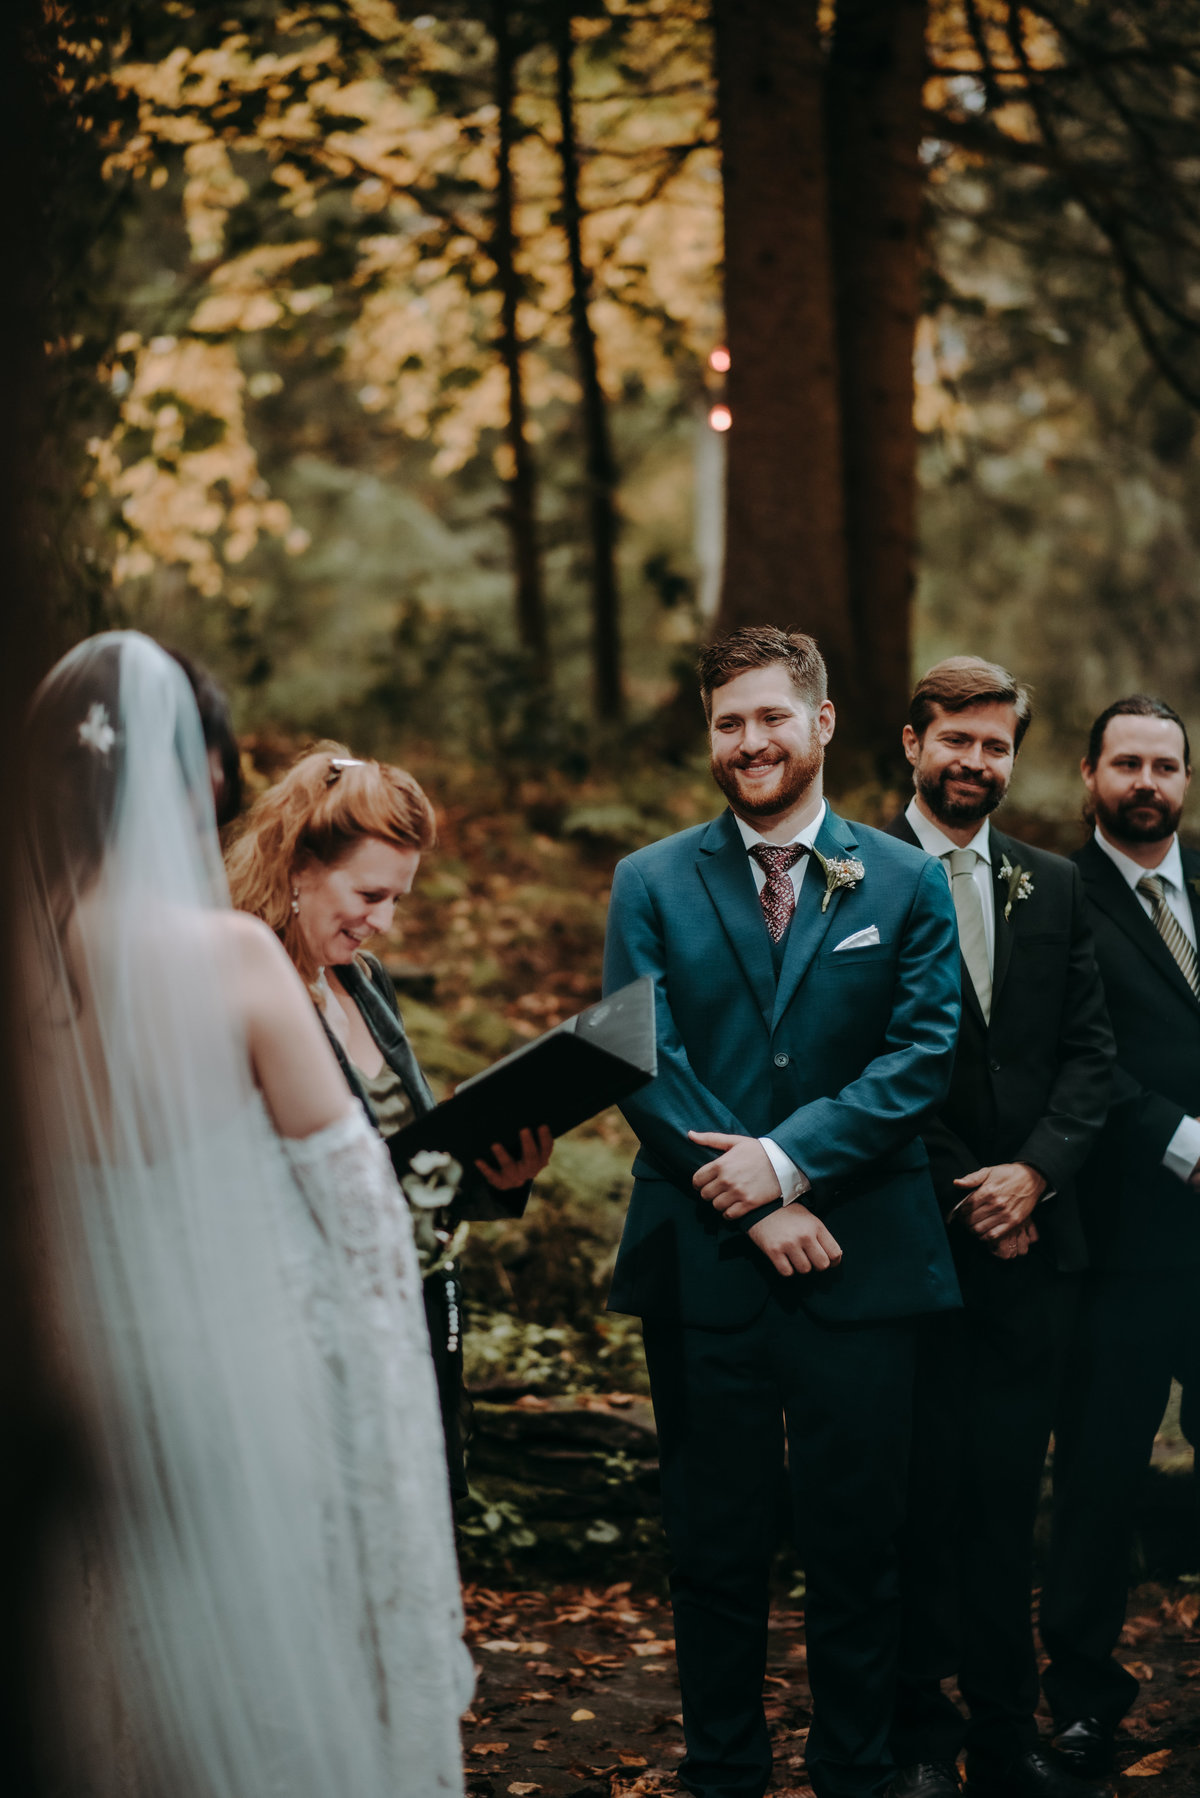 CatskillsJulietandEric2019WeddingPhotography (65 of 213)